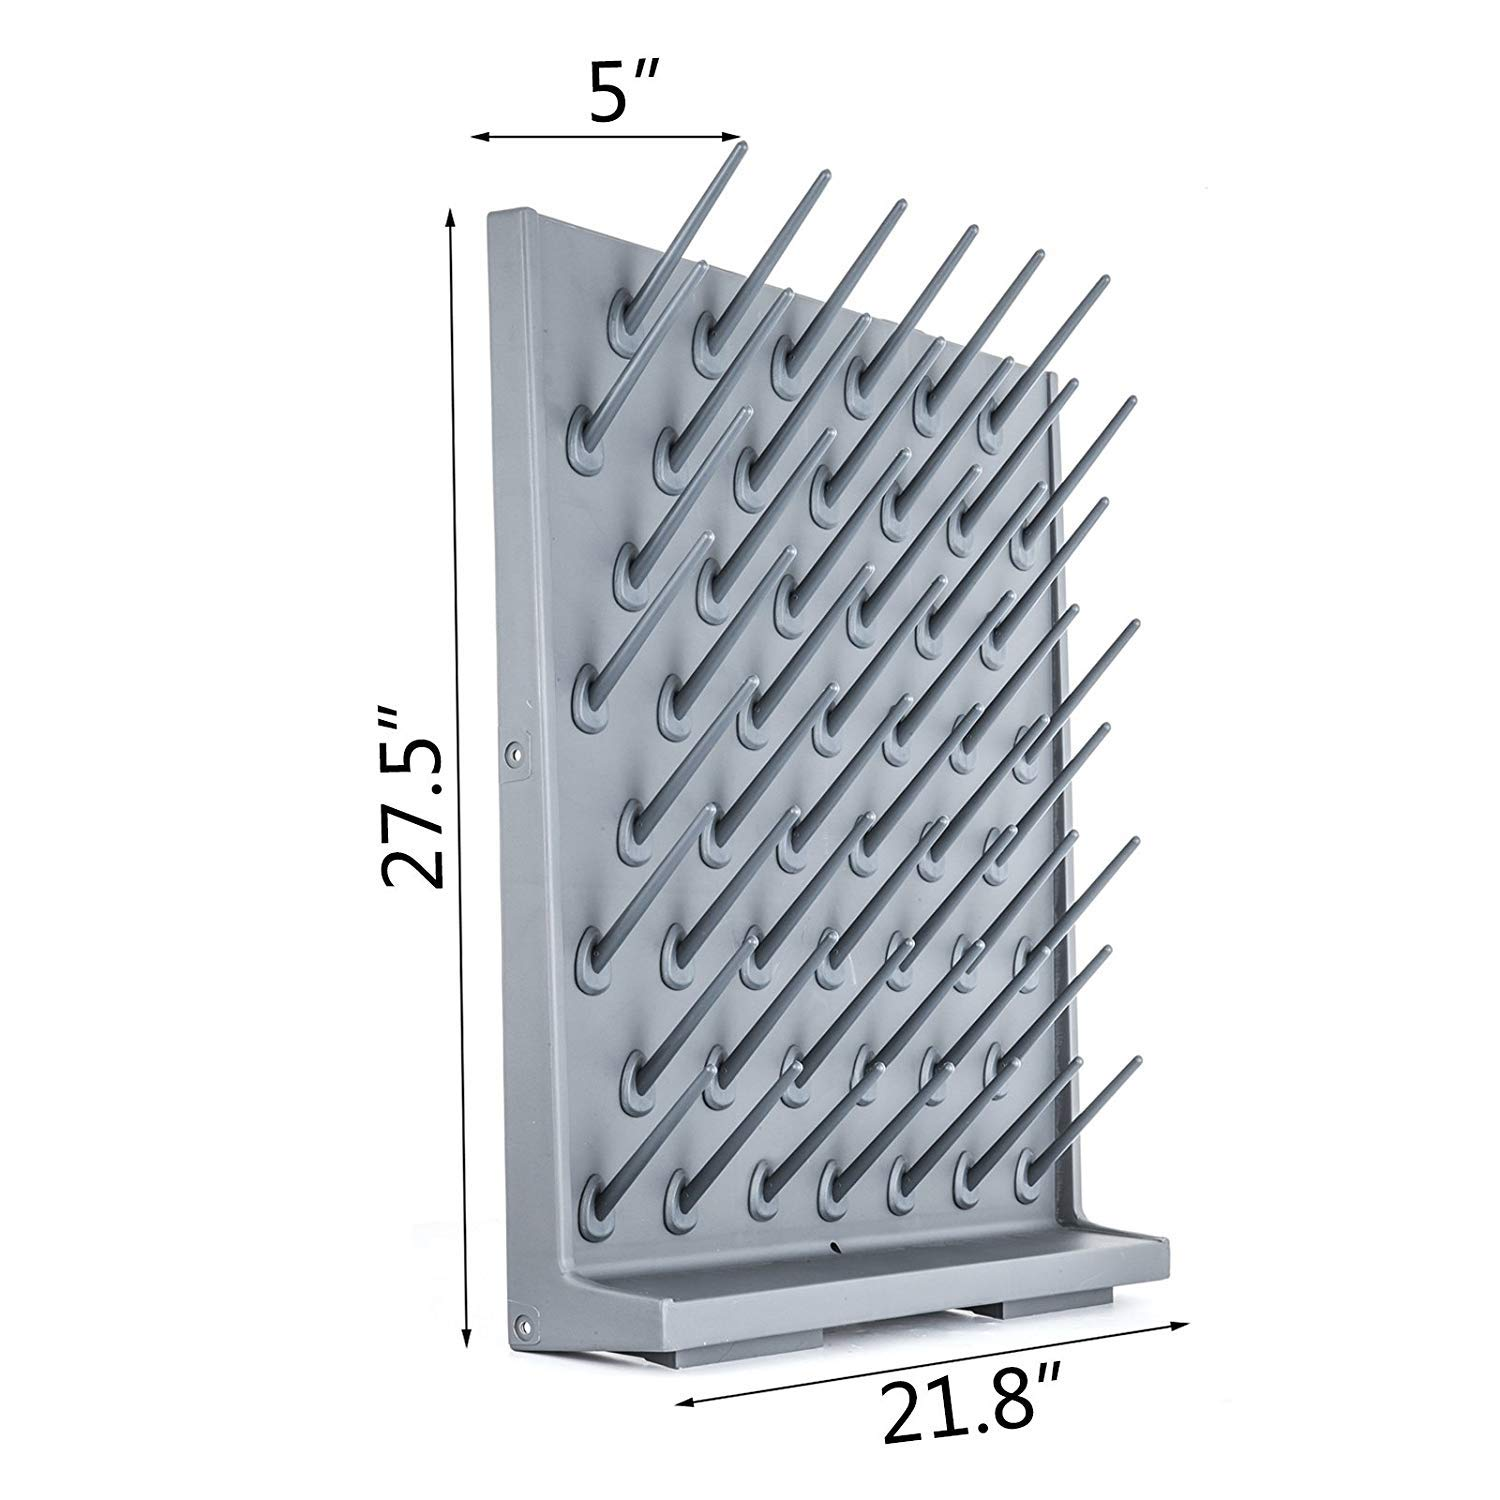 52 Pegs Lab Supply Drying Rack, Pegboard Bench-top/Wall-Mount Laboratory Glassware 52 Detachable PegsLab Drying Draining Rack Cleaning Equipment by FSYD